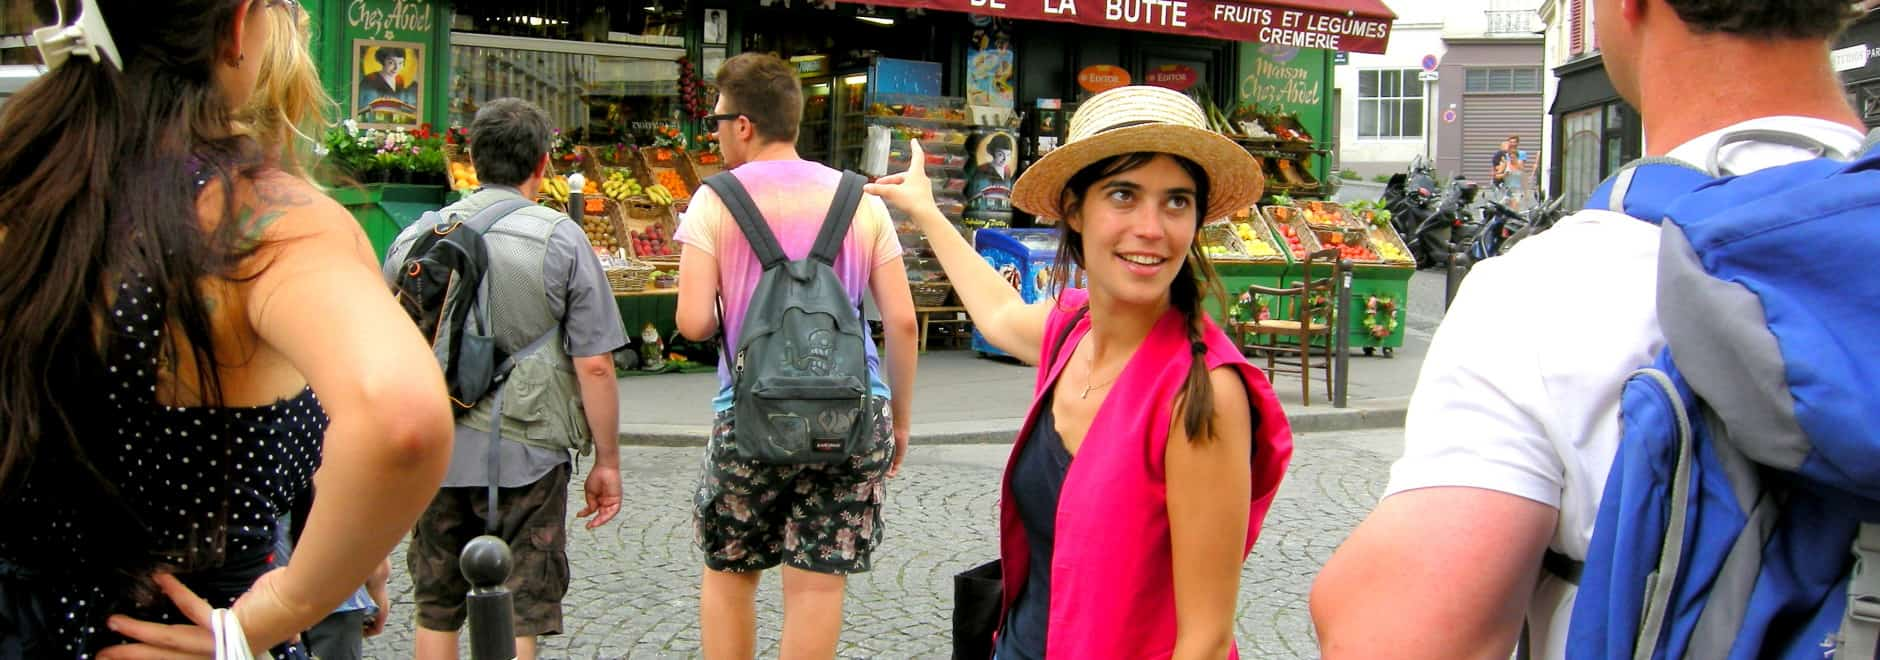 discover walks tour guide pink vests montmartre